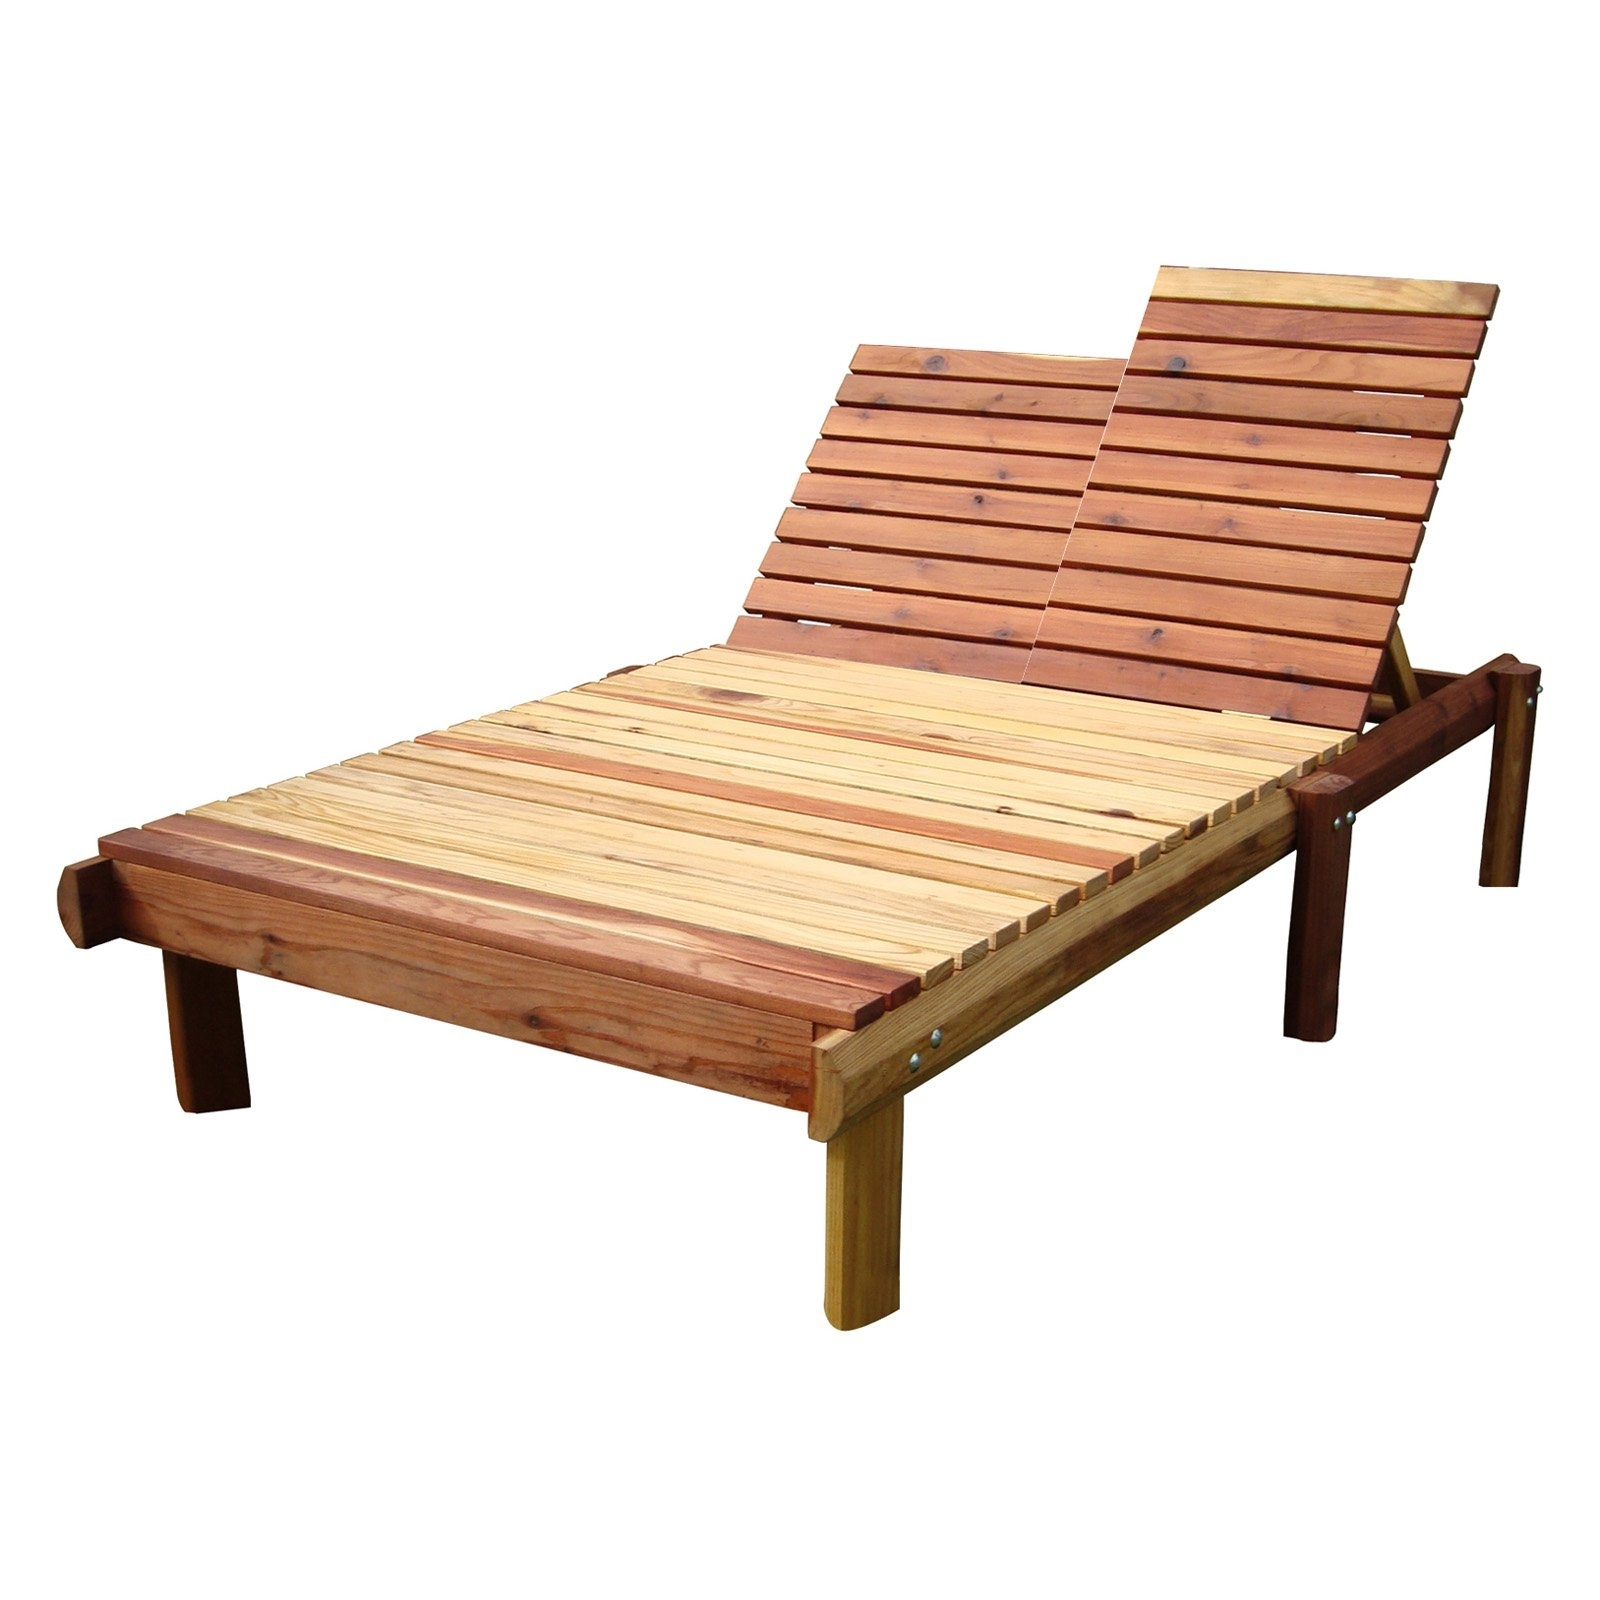 Hardwood Chaise Lounge Chairs Regarding Best And Newest Redwood Chaise Lounge Chairs • Lounge Chairs Ideas (View 11 of 15)